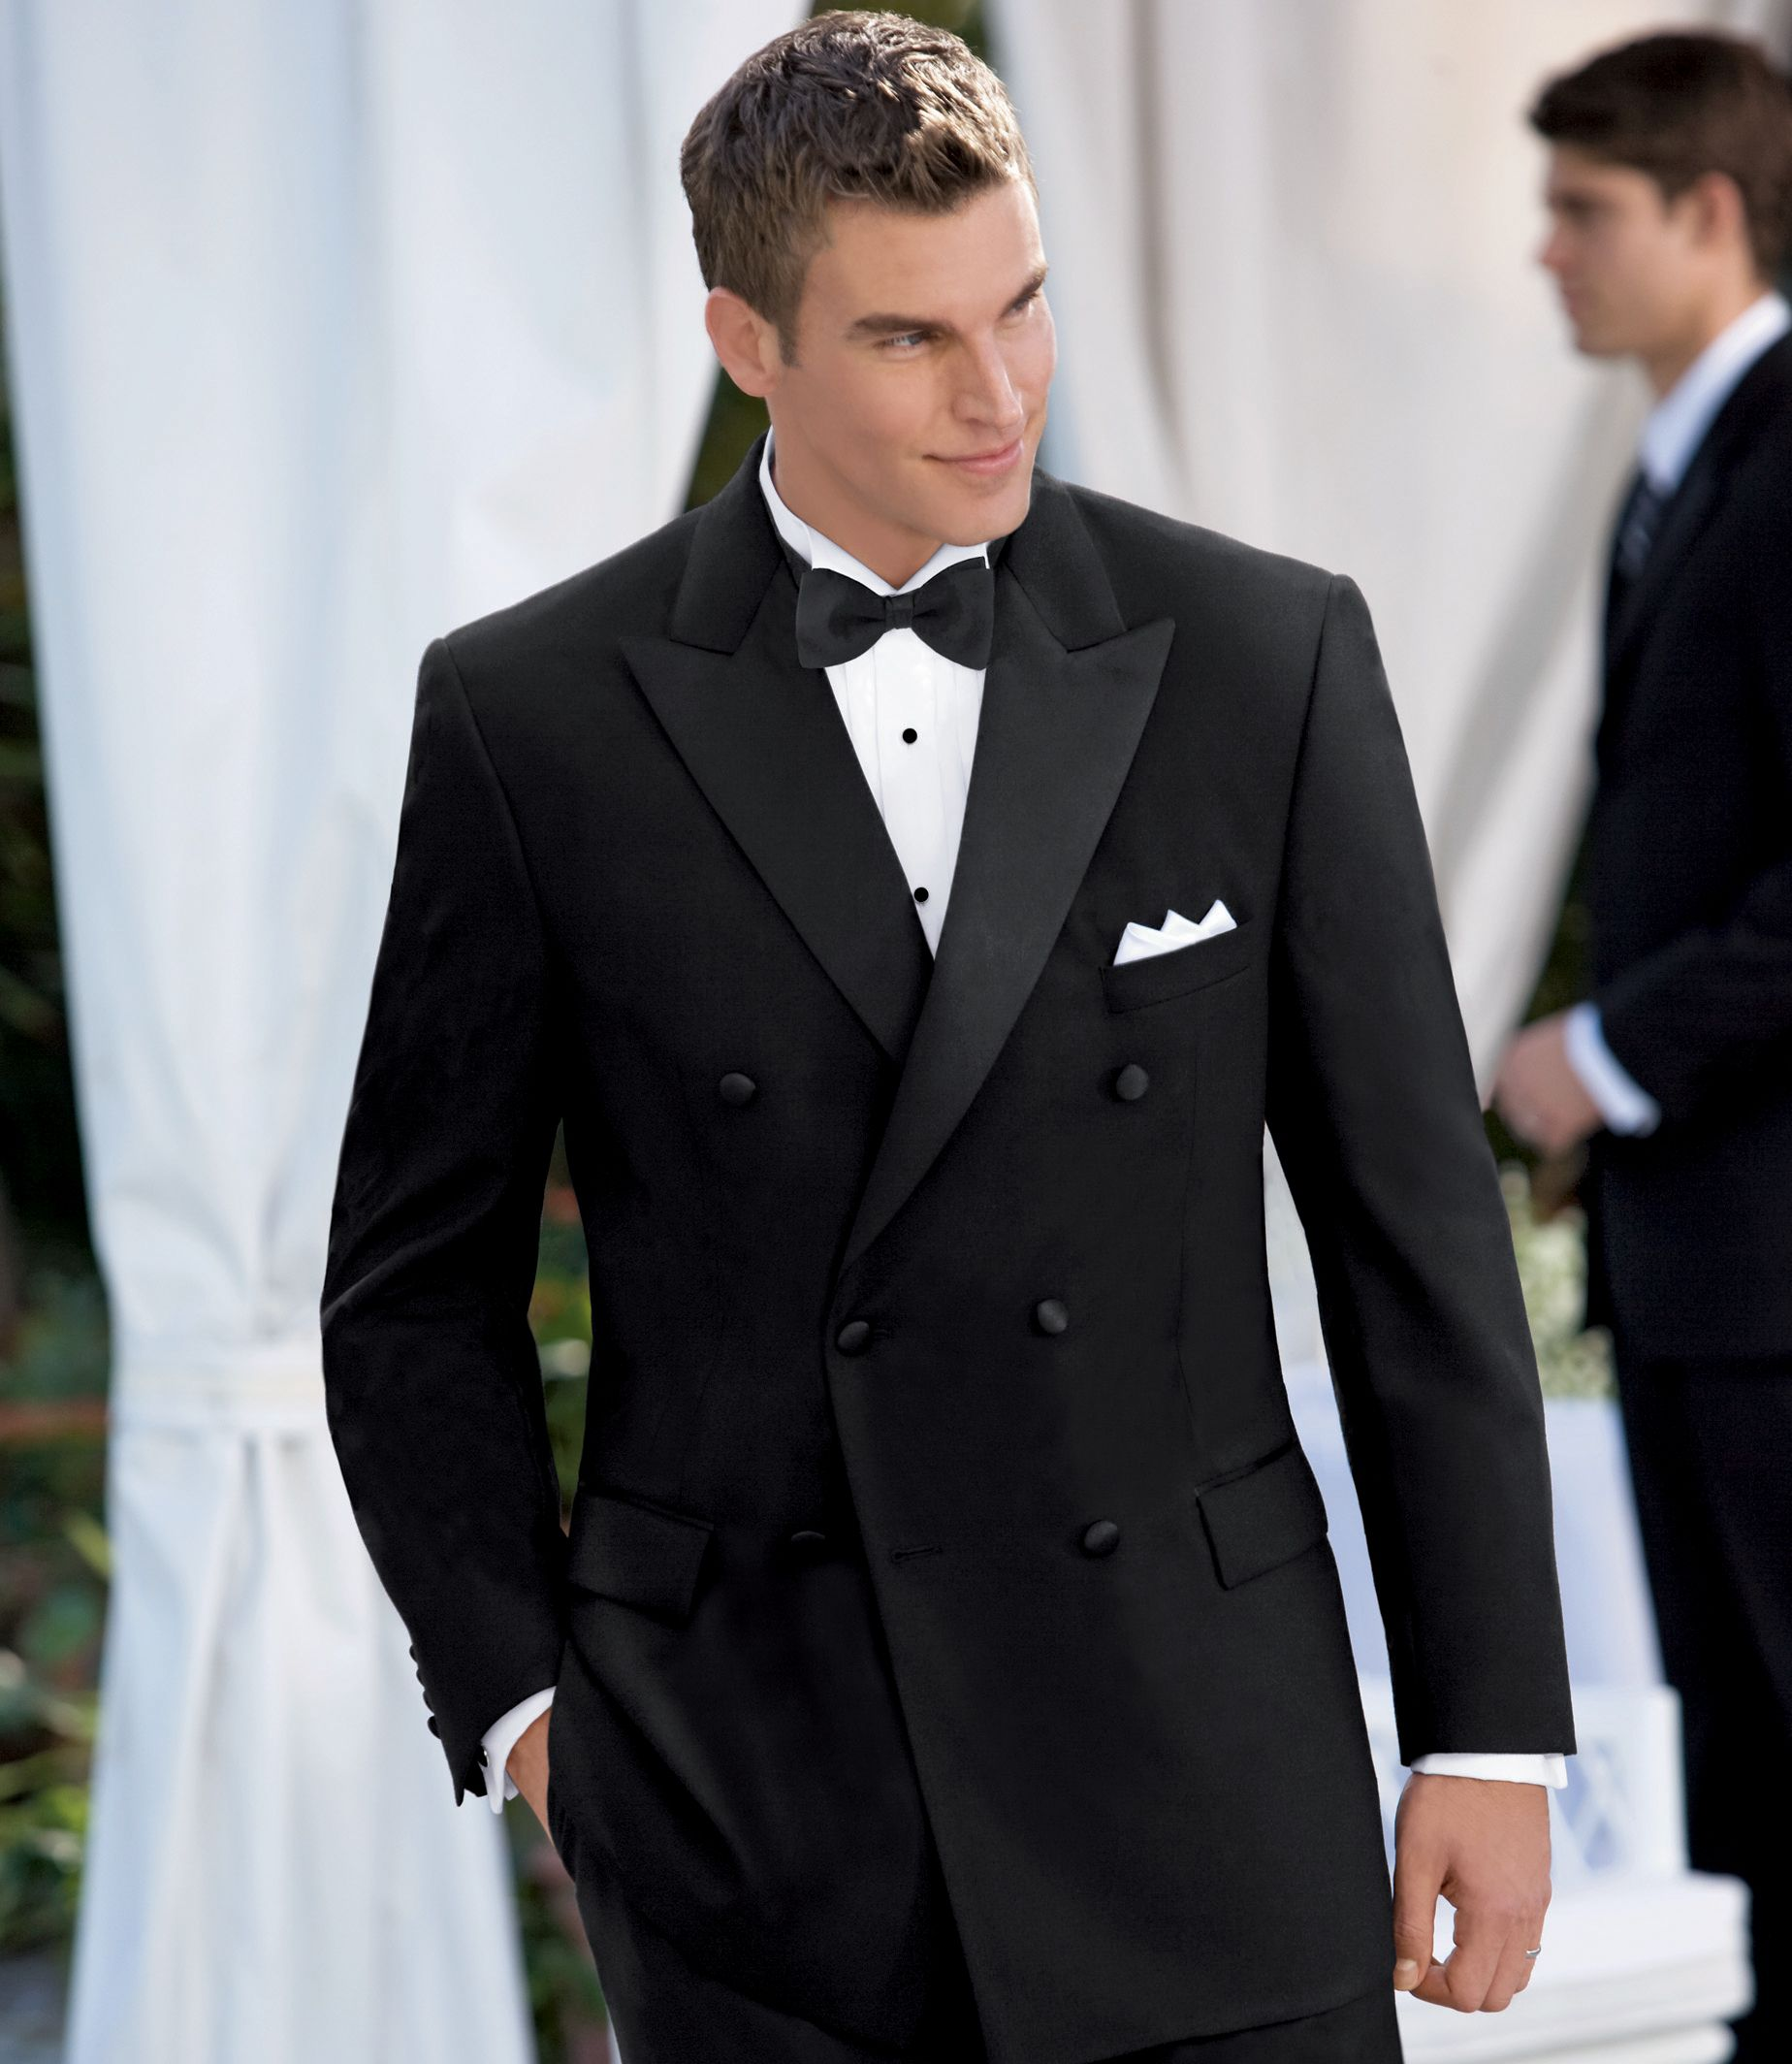 Men's Suit Black Double-Breasted Tuxedo Jacket JoS. A. Bank - BLACK - 46 - LONG